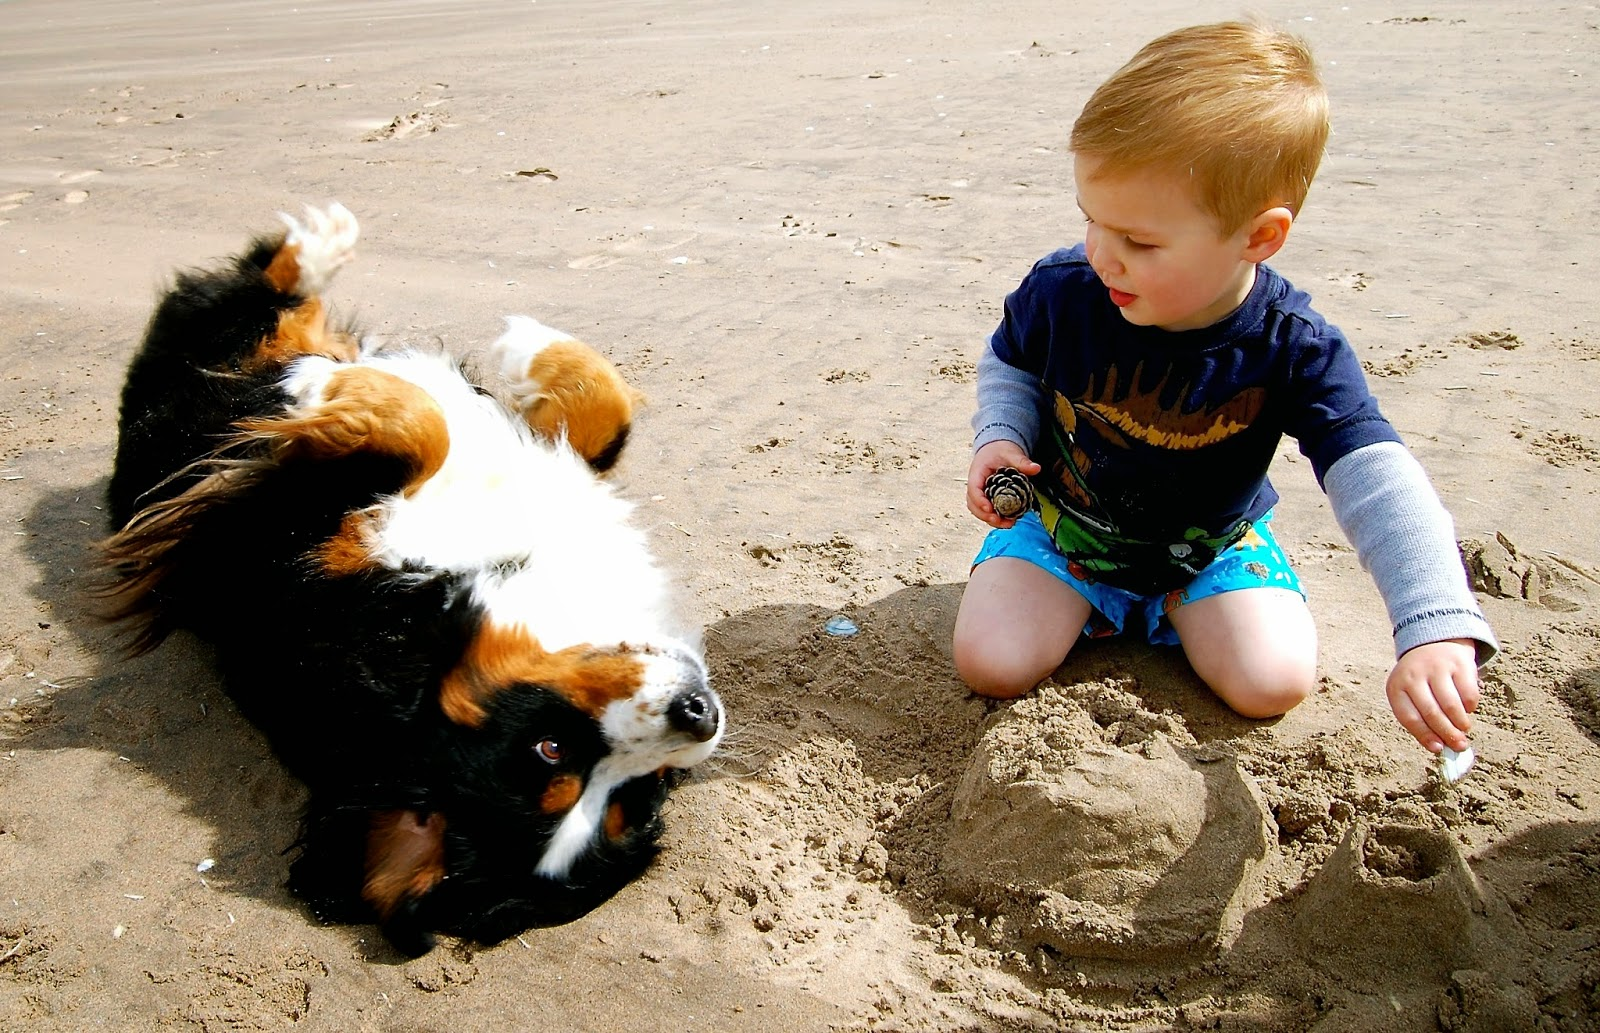 Mattie and Jackson on the beach